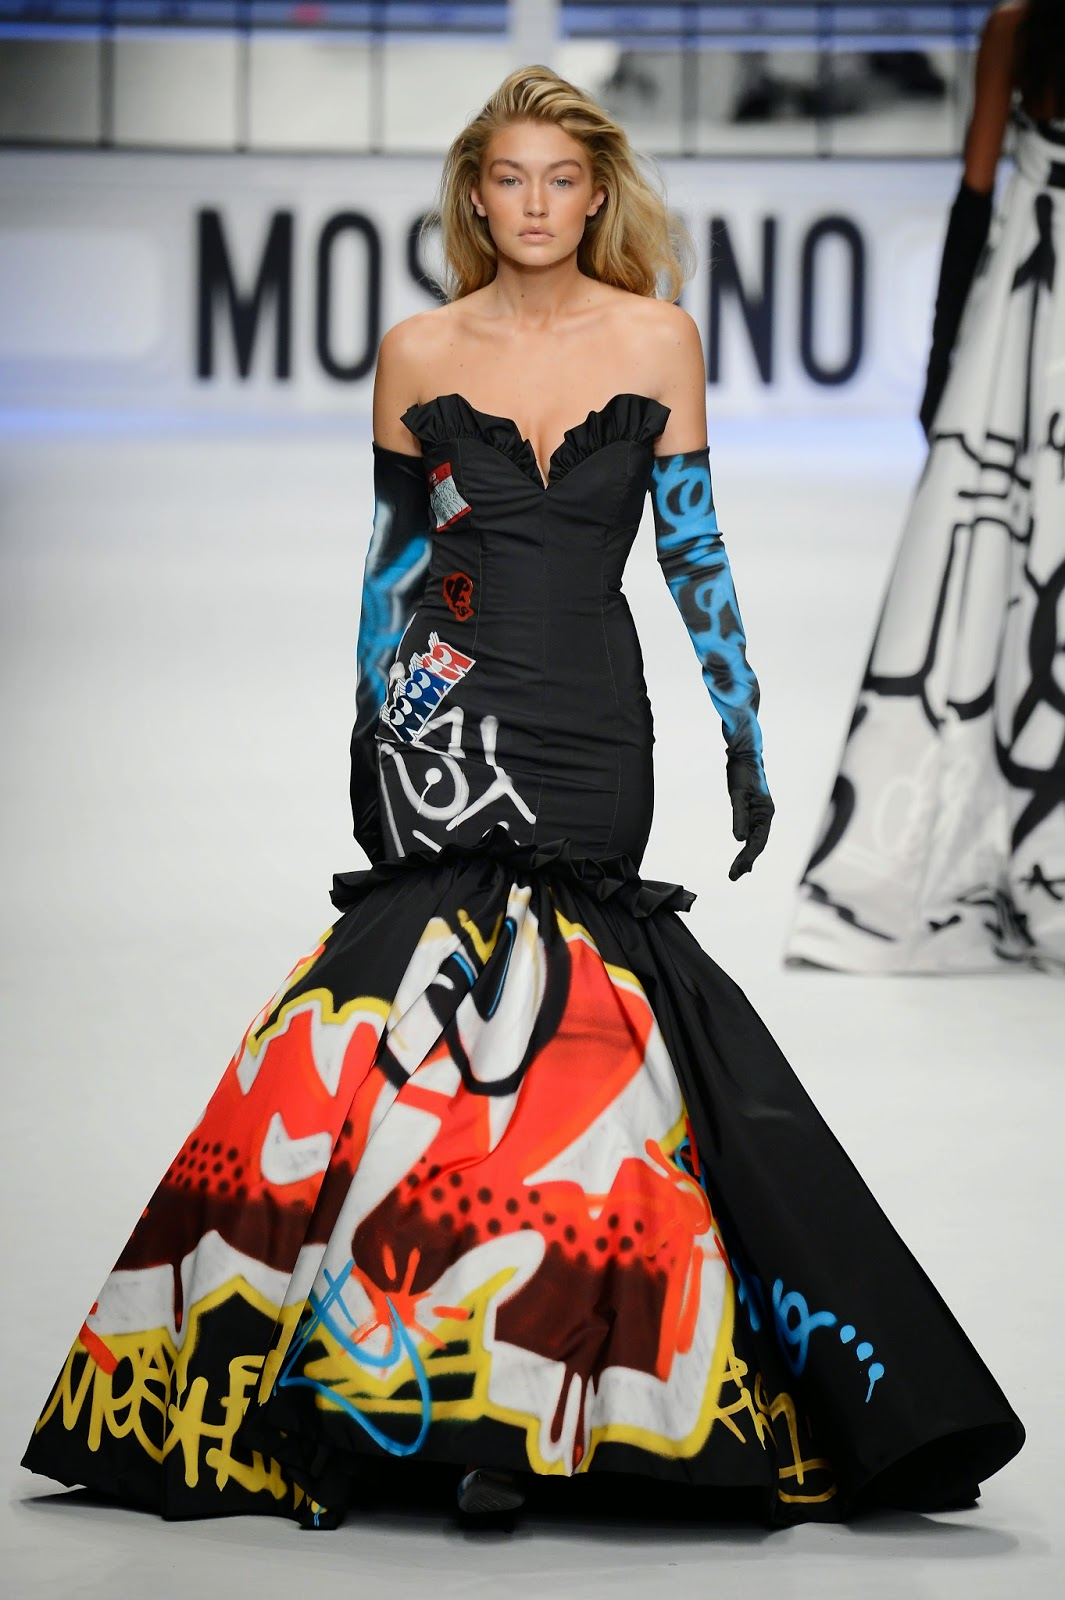 Fashion model,TV Personality: Gigi Hadid - Moschino F/W fashion show